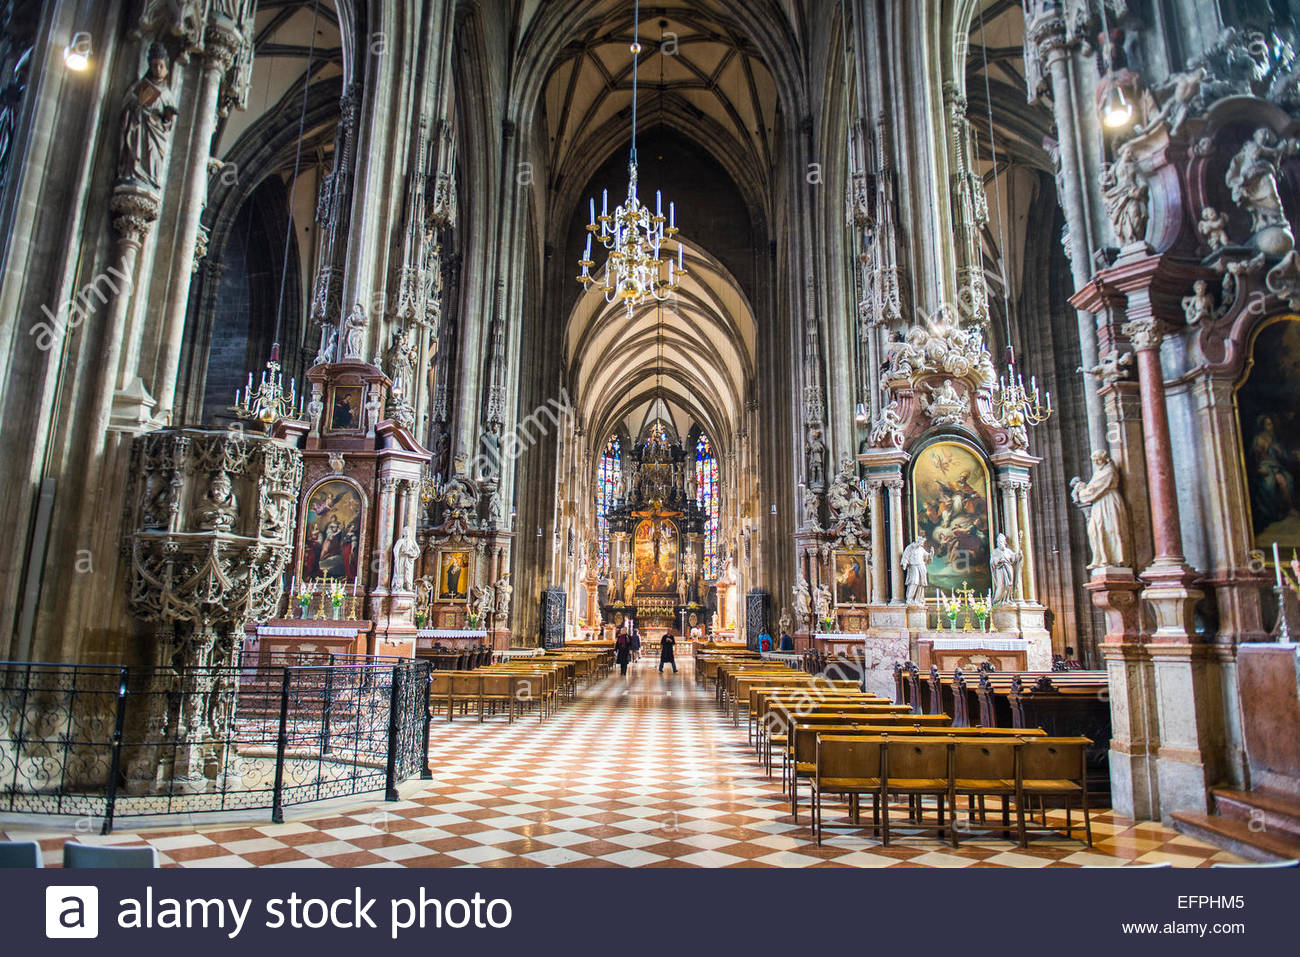 Interior of the Stephansdom (St, Stephen's Cathedral), Vienna, Austria, Europe - Stock Image